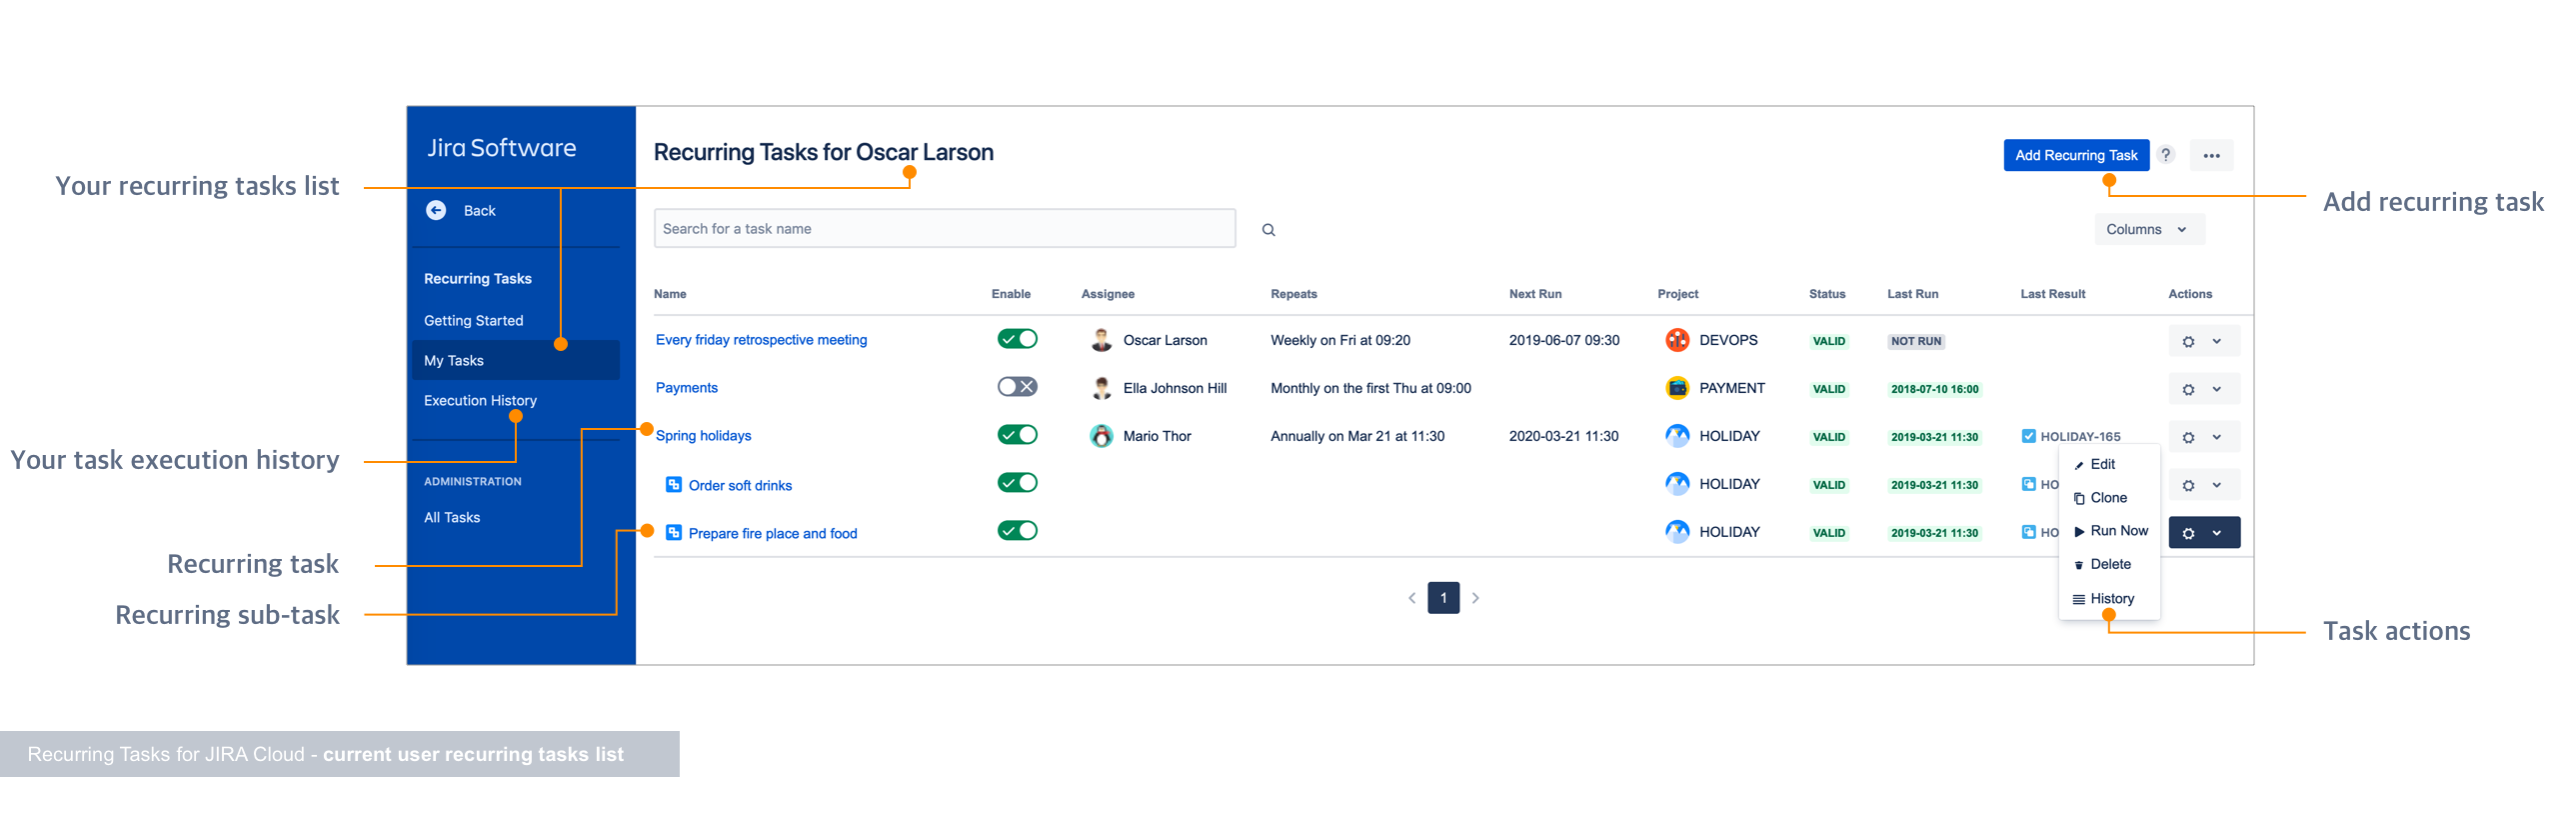 Recurring Tasks for Jira Cloud 3